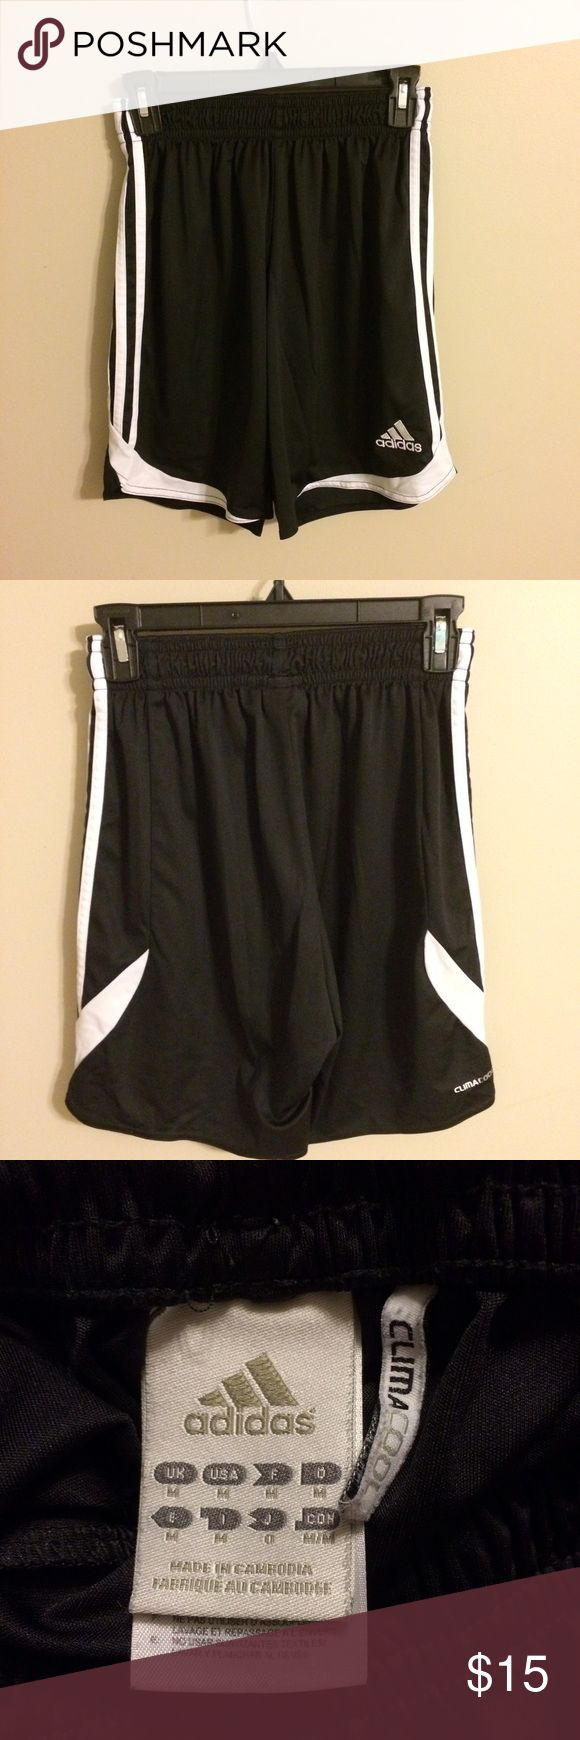 Adidas soccer shorts Worn for 1 season, no wear and tear, still in very good condition. Size medium Will model (if requested)                                                                ✅ will consider all trades and offers Adidas Shorts